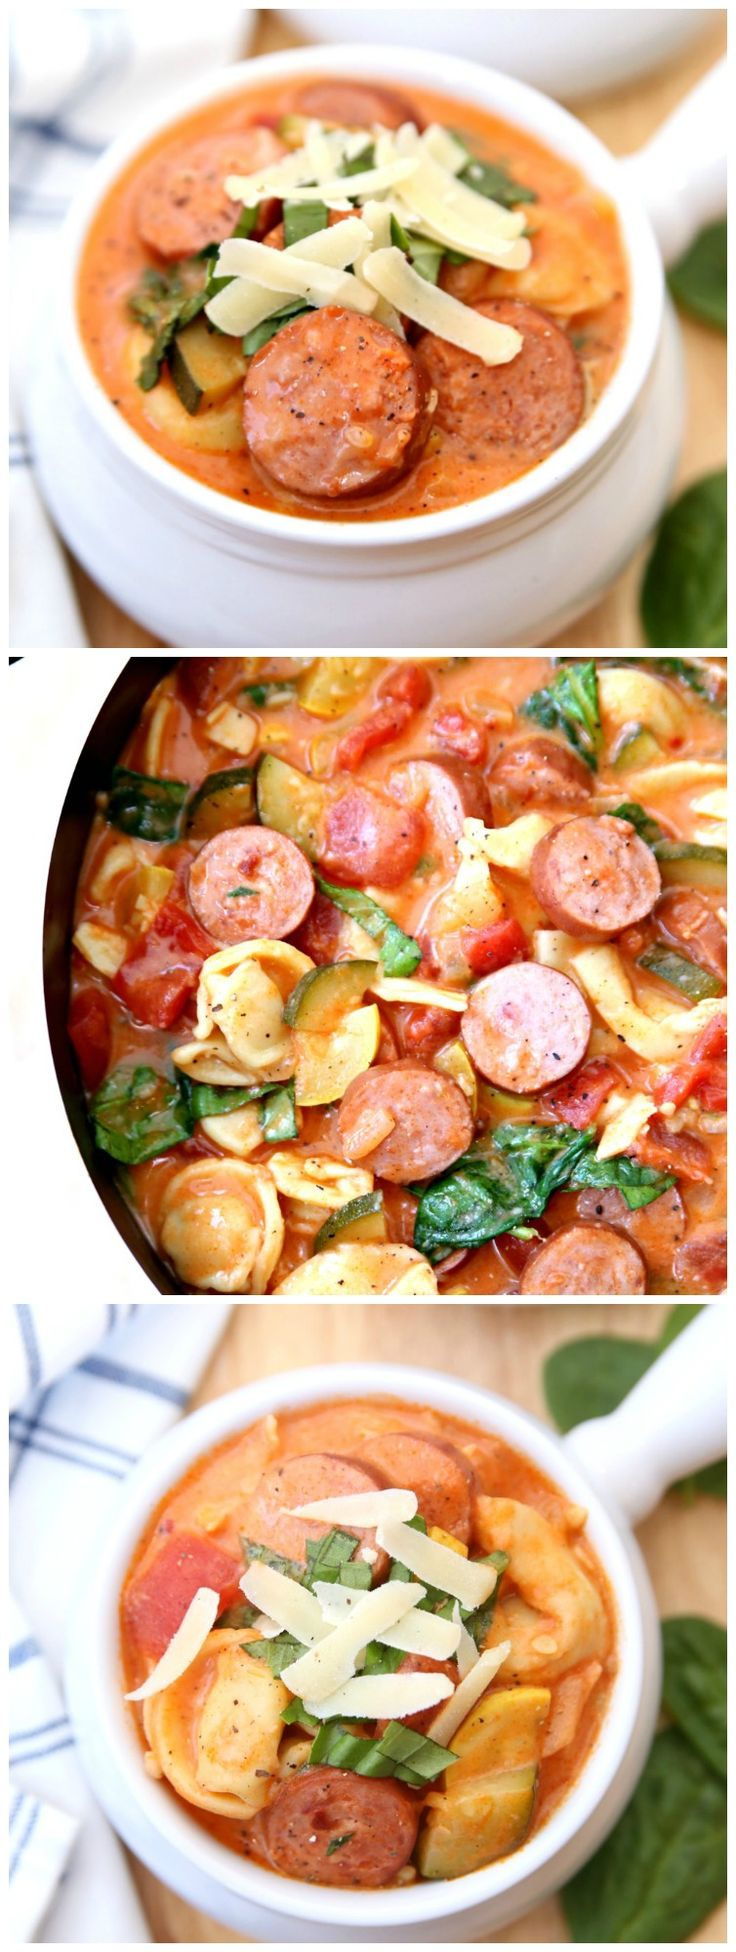 Creamy Smoked Sausage, Tomato, and Tortellini Soup - Perfect recipe for busy week nights. #EverydayEckrich #ad